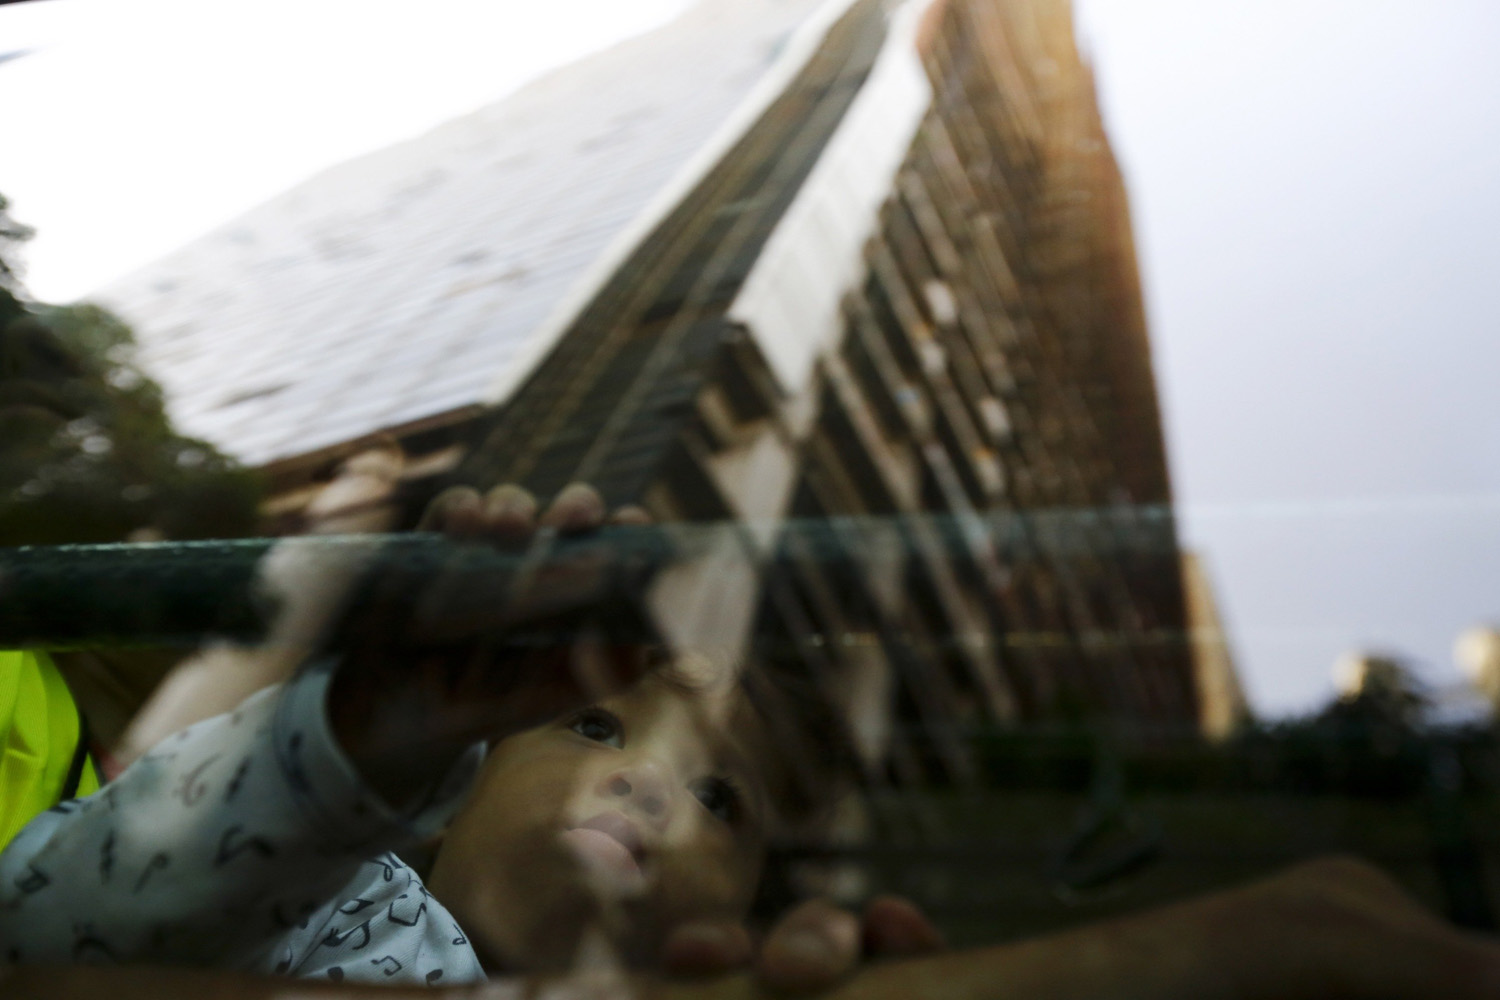 Jul. 22, 2014. An evicted resident of Tower of David sits in a bus, as the building is reflected on the window, which will transport them to the new home in Caracas, Venezuela.